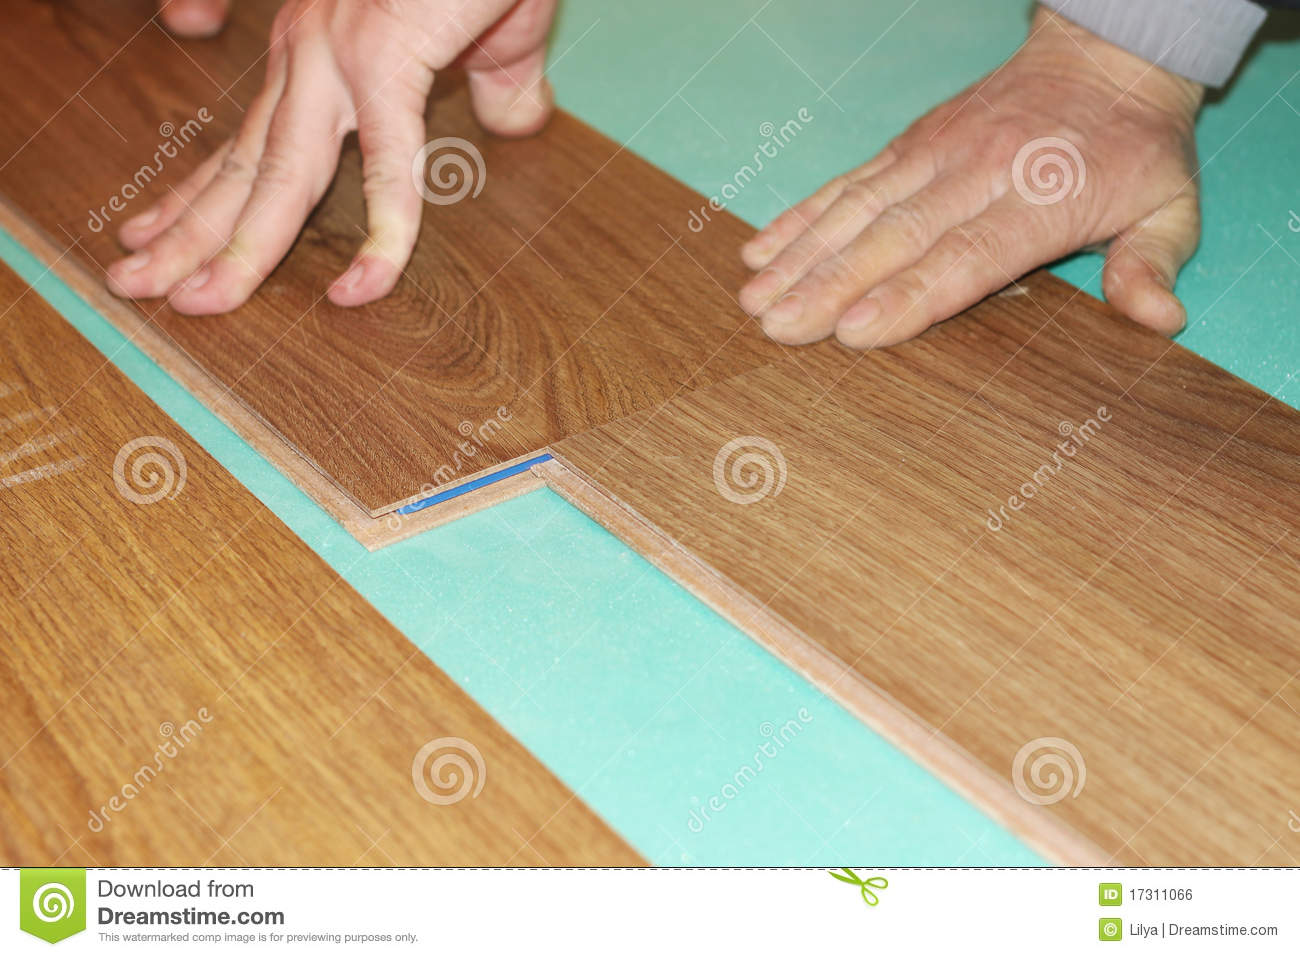 how to cut laminate flooring to minimize waste